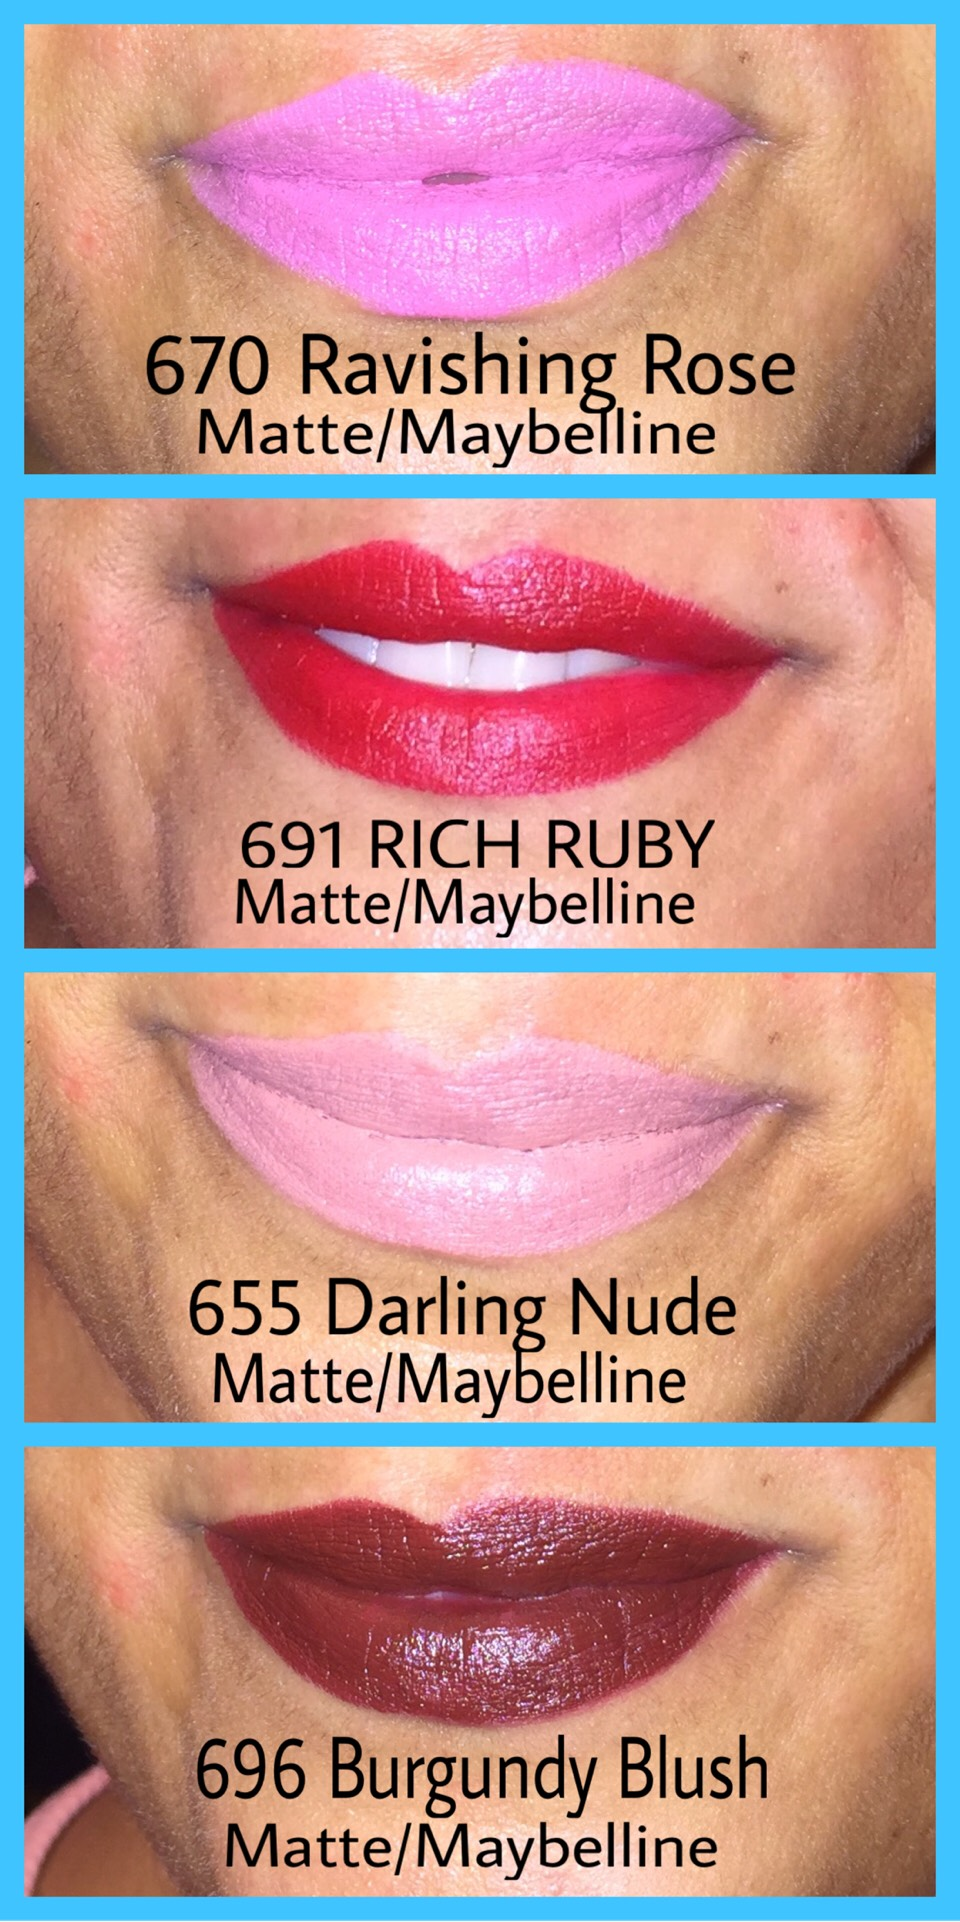 Maybelline MATTE-MAT Lipsticks they are a creamy Matte textures I love them. Fun Colors in person the look one color and in photos their appearance is another!!